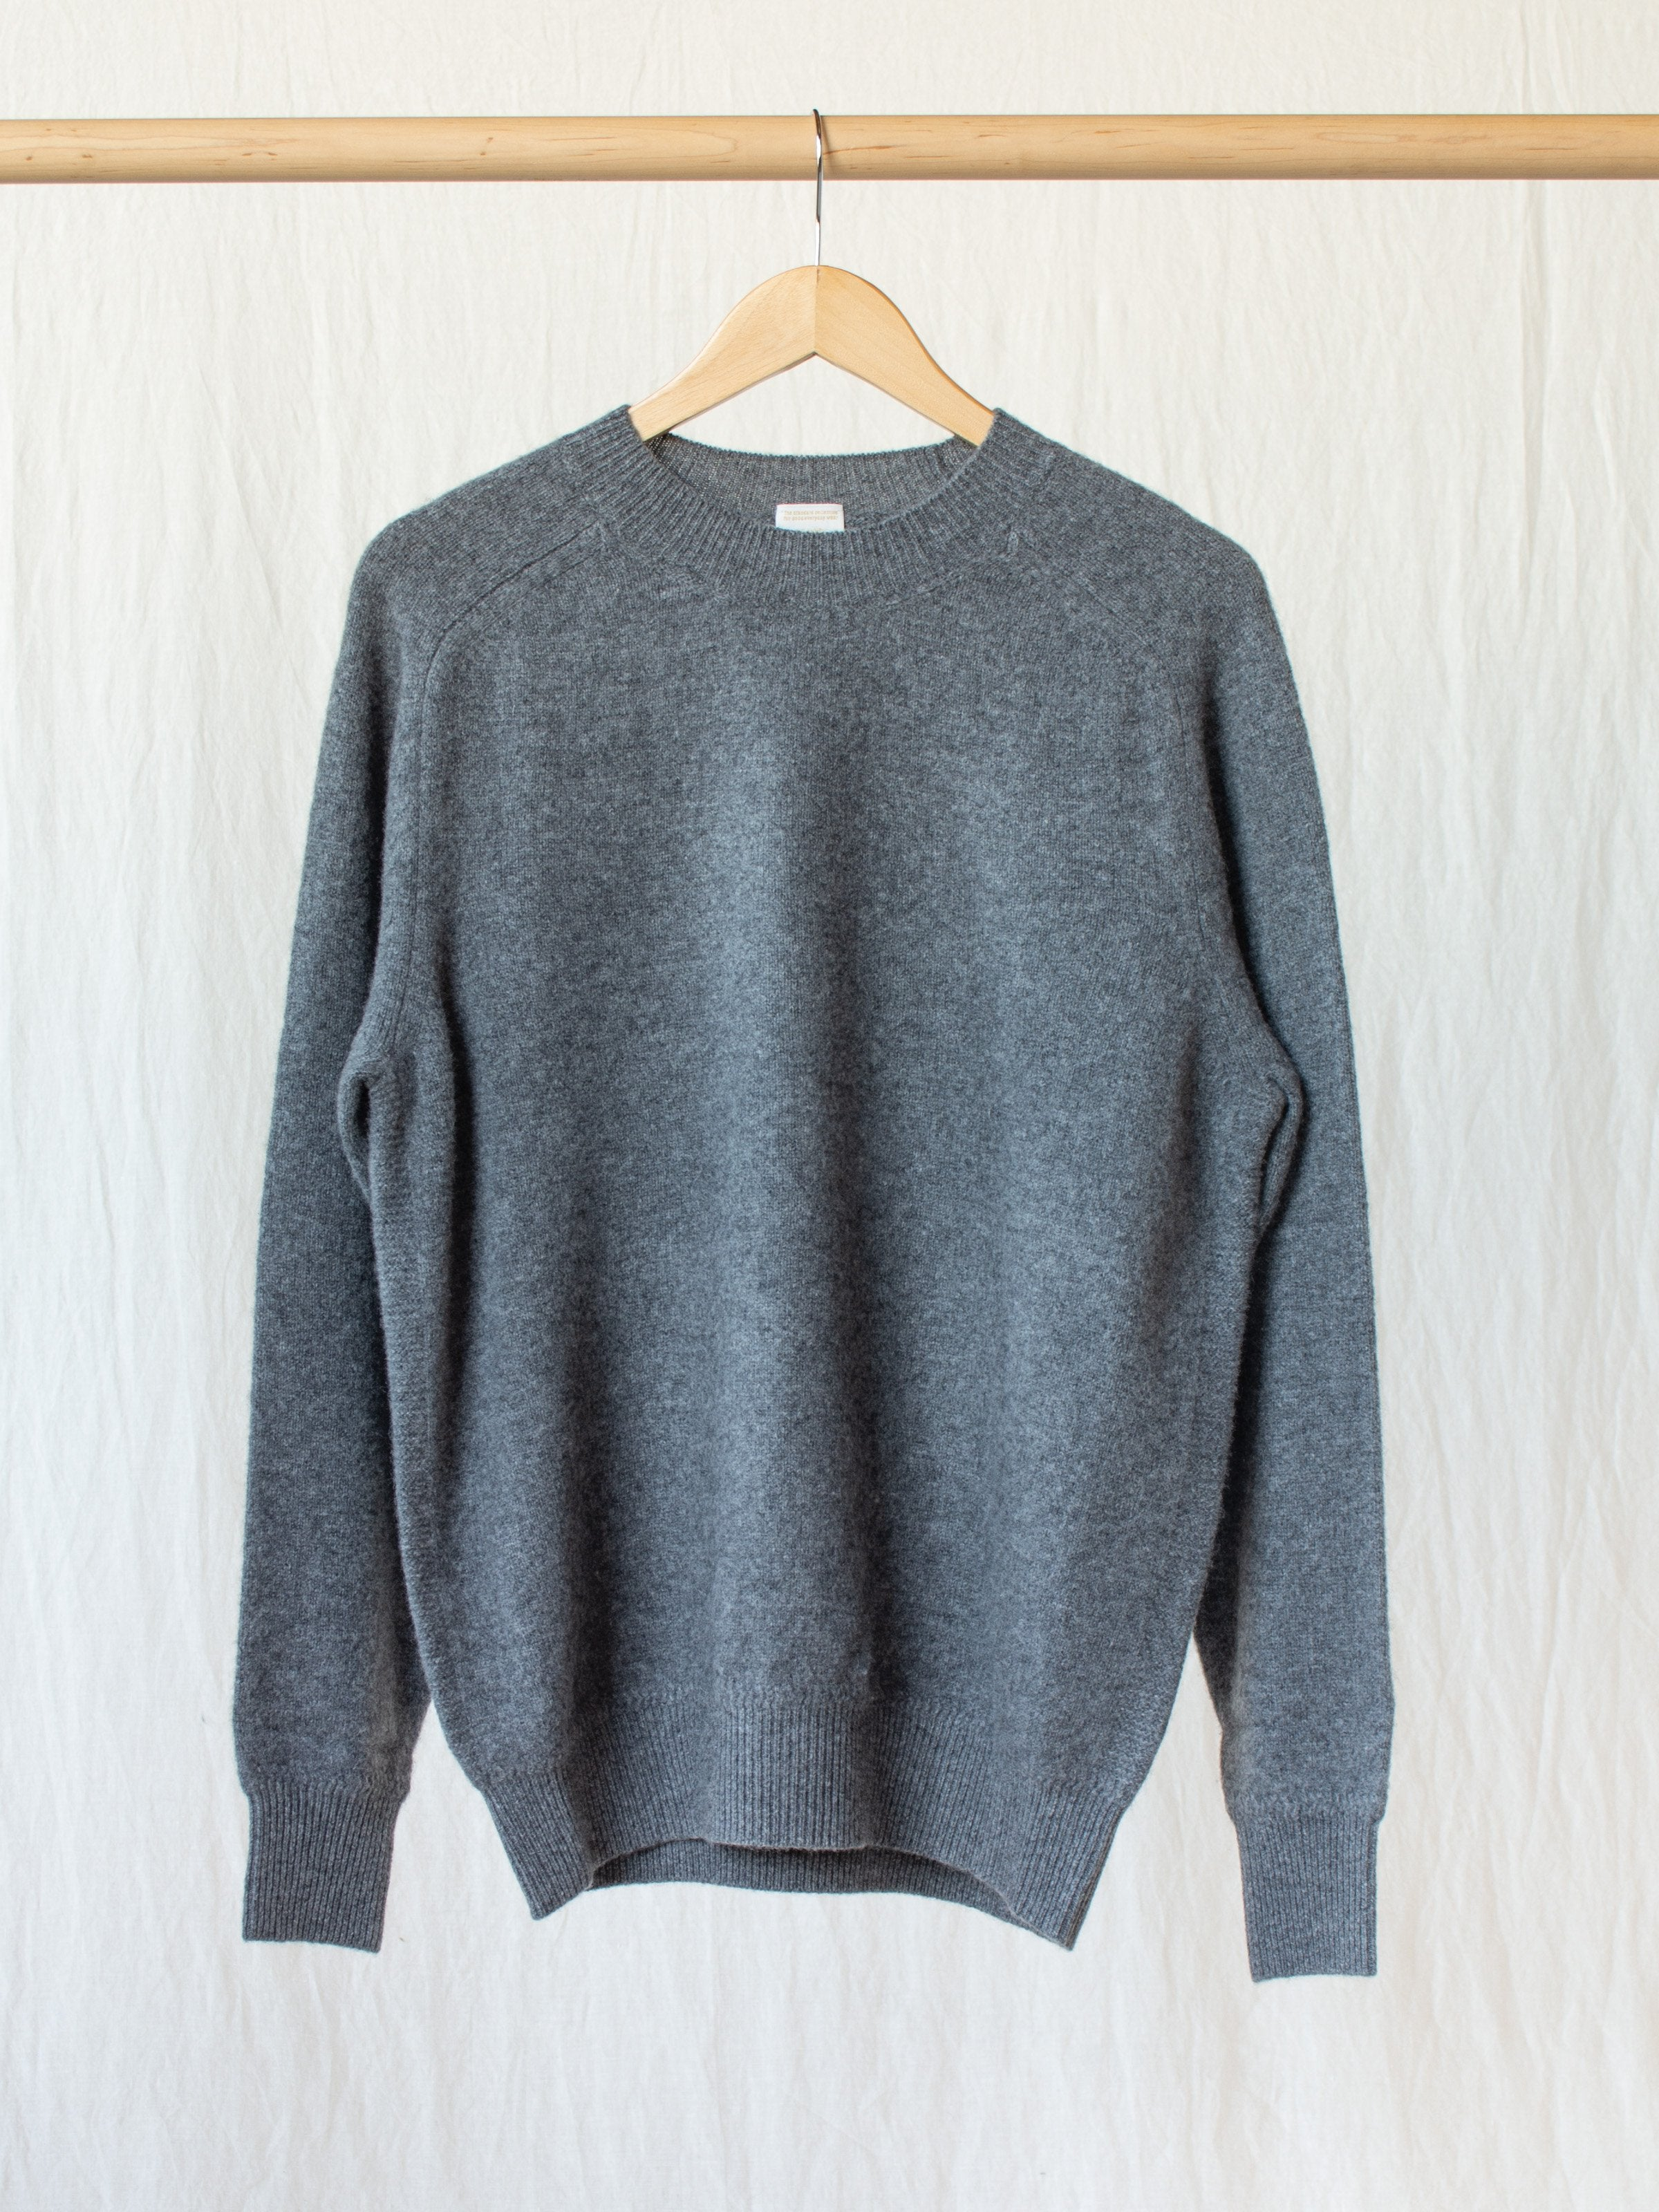 Namu Shop - Phlannel Wool Cashmere Crew Neck Knit - Gray